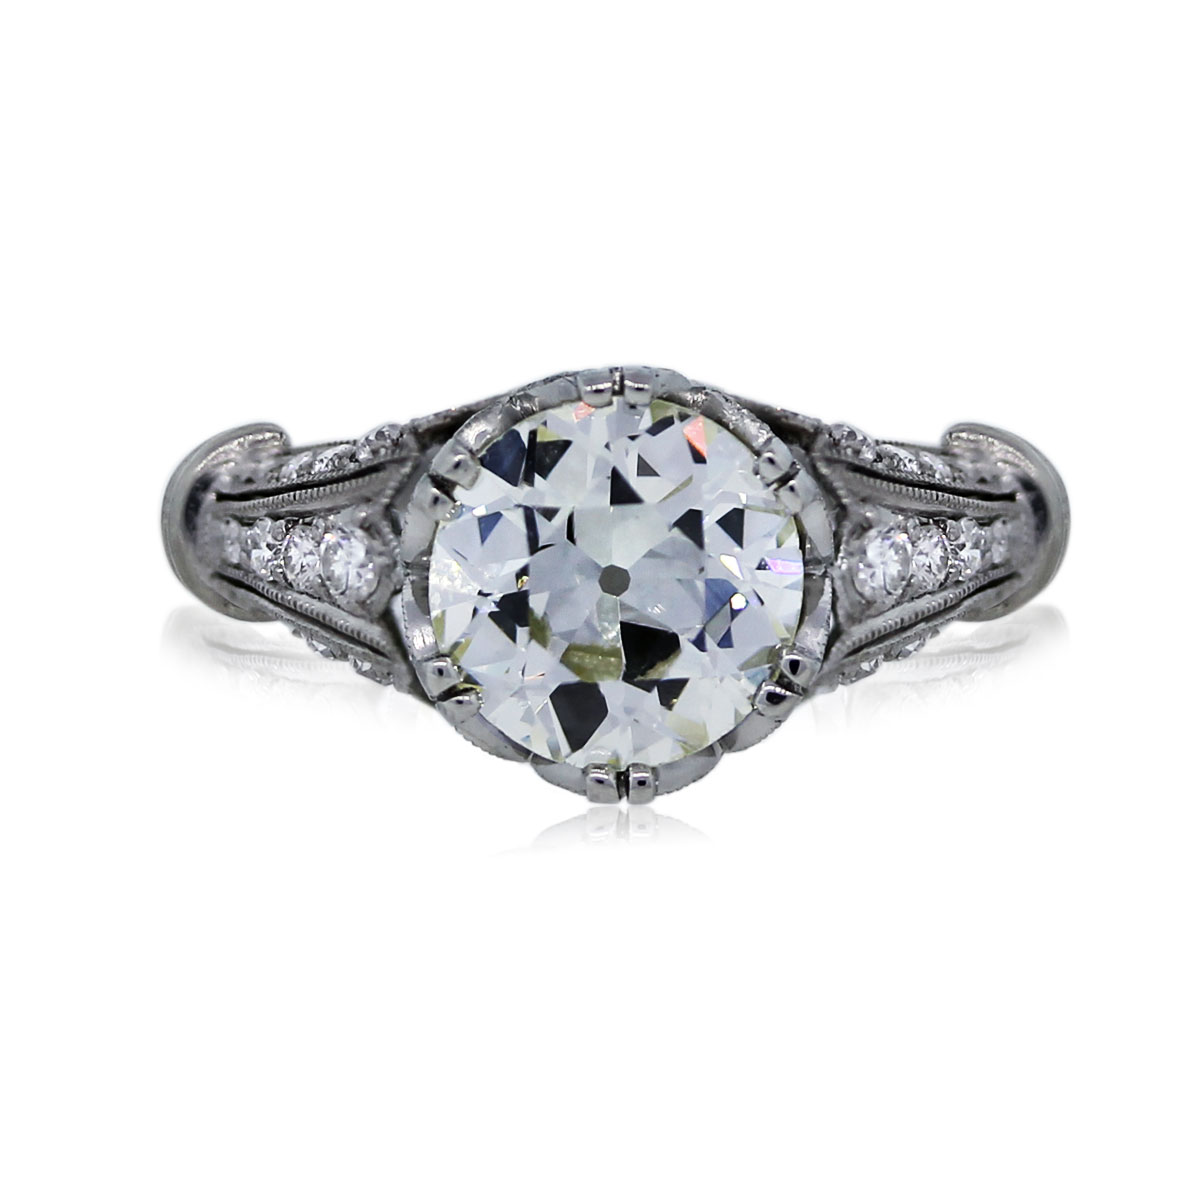 You are Viewing this 2.45ct Old European Cut Diamond Engagement Ring!